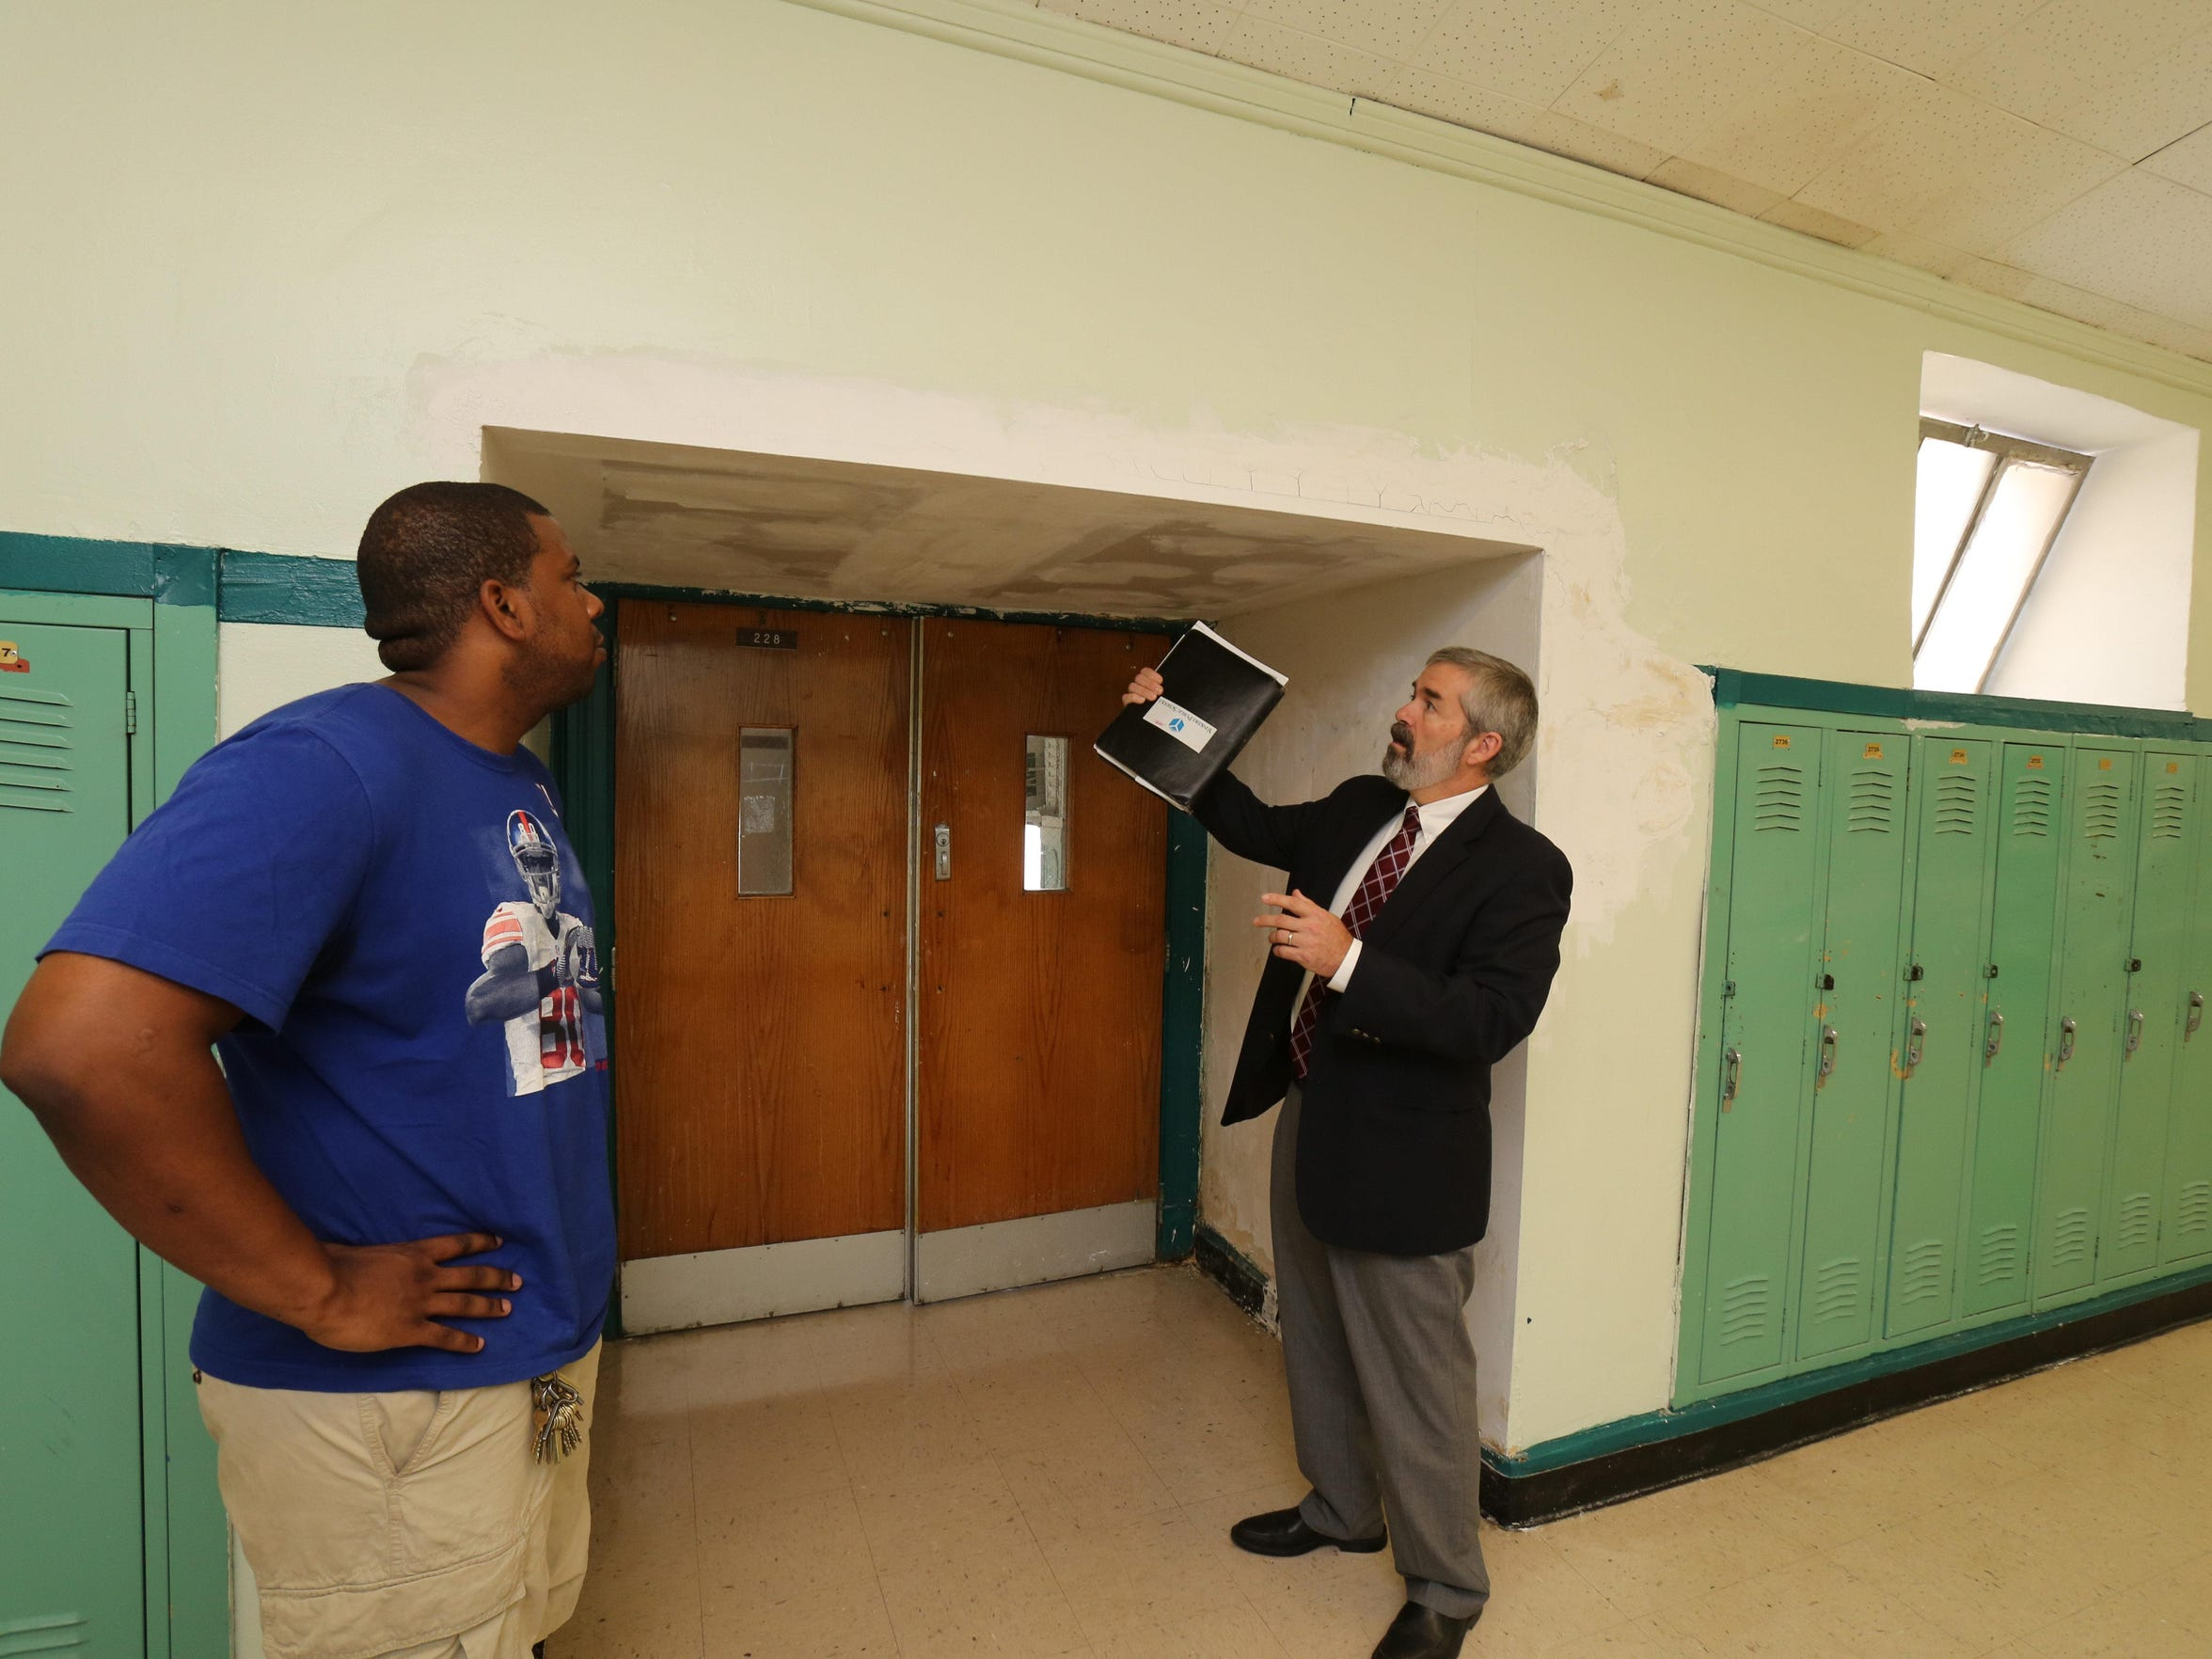 John Carr, right, director of school facilities management